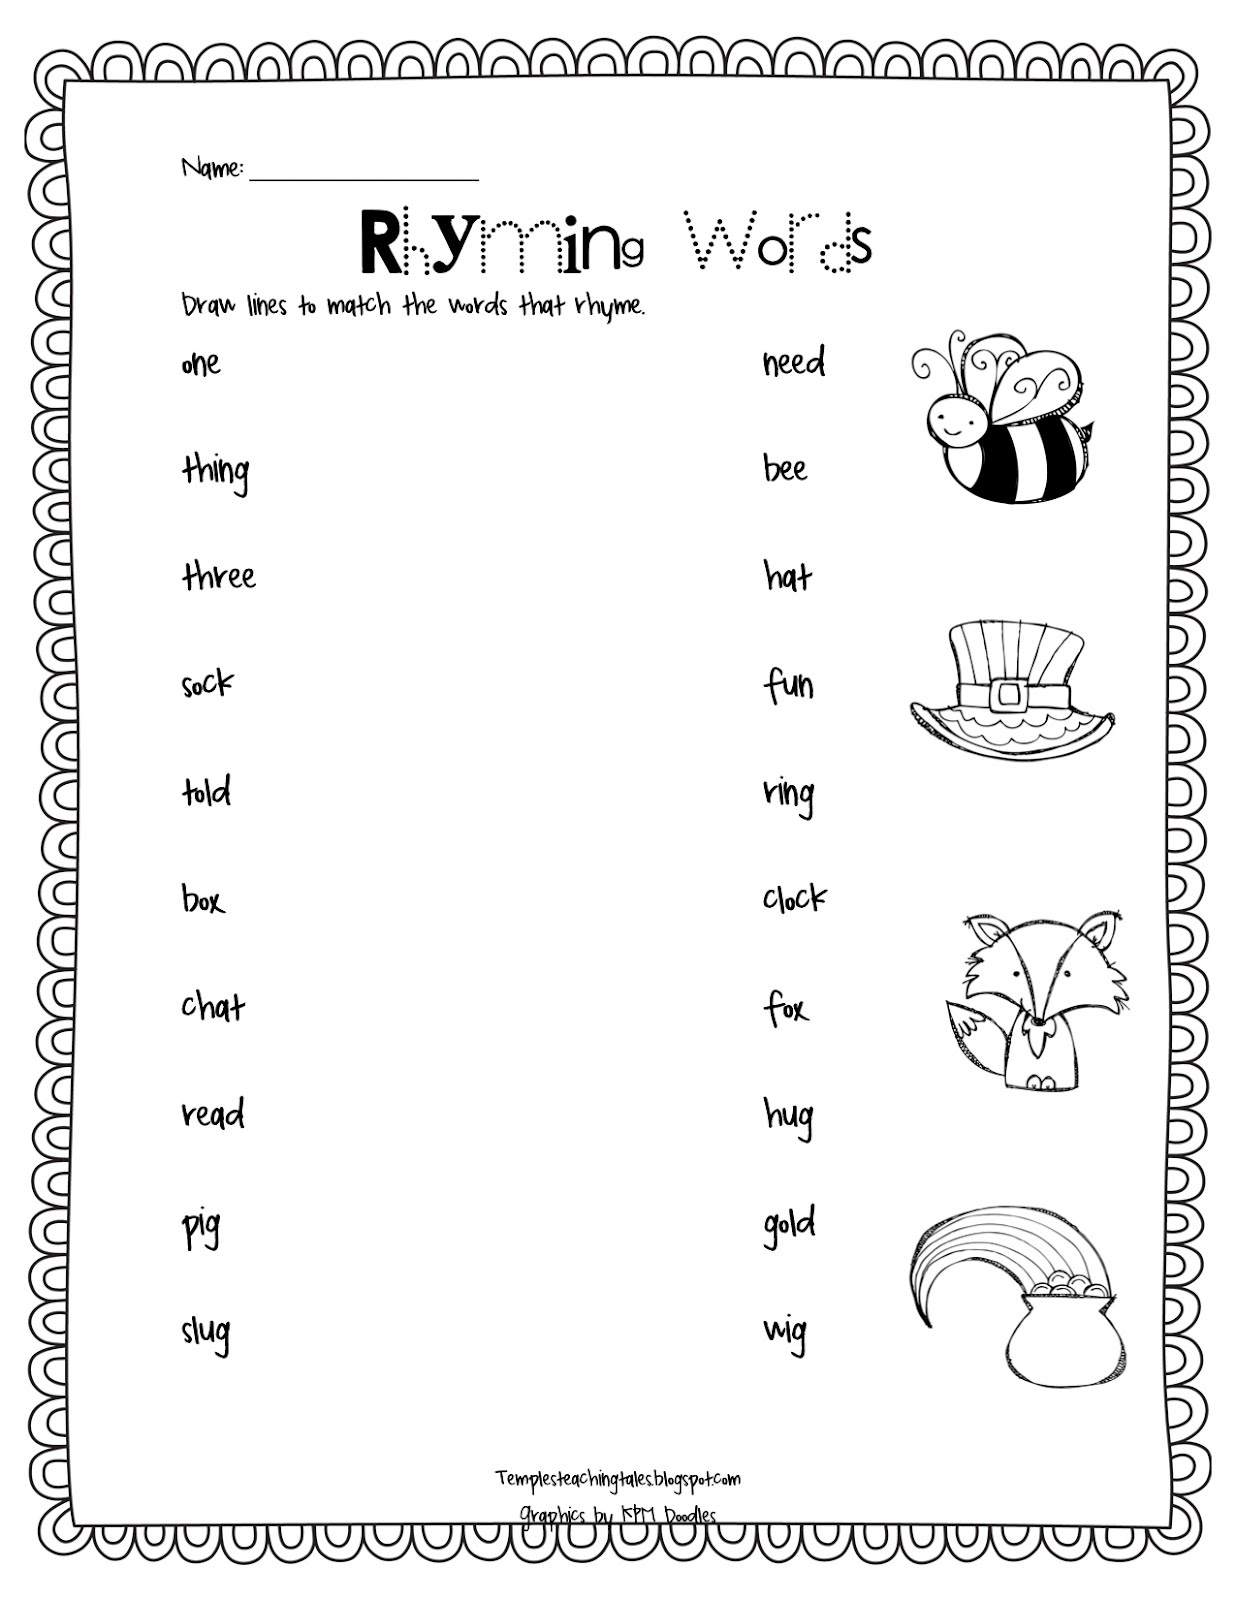 Rhyming Worksheet 1st Grade - rhyming worksheets 1st grade ...